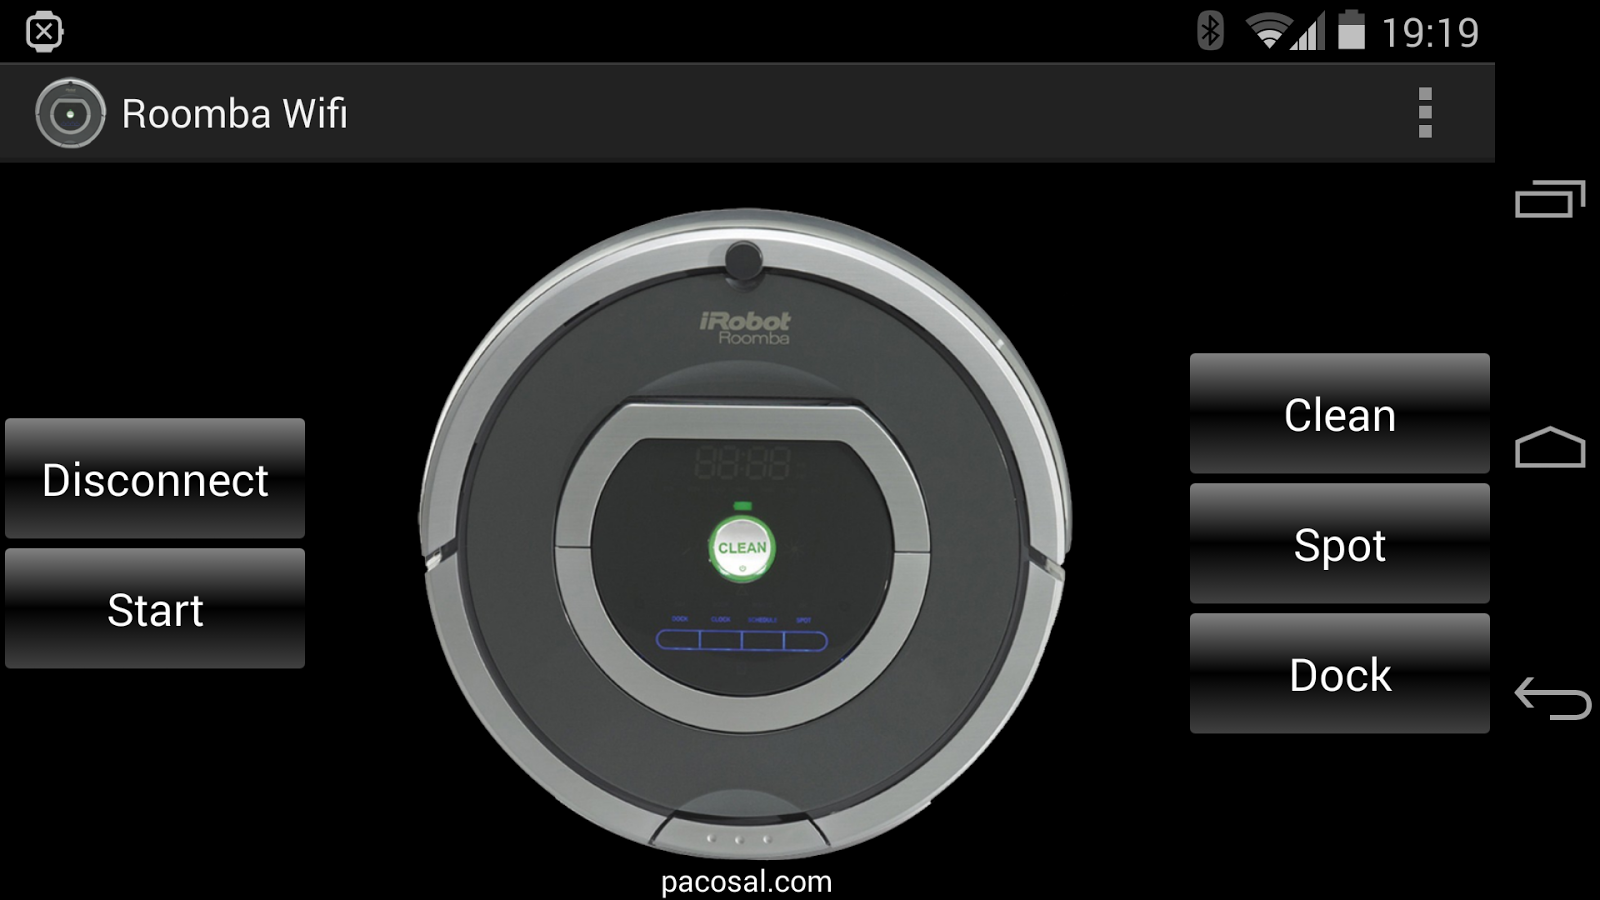 RooWifi: Wifi Remote for Roomba Android App - Main Screen